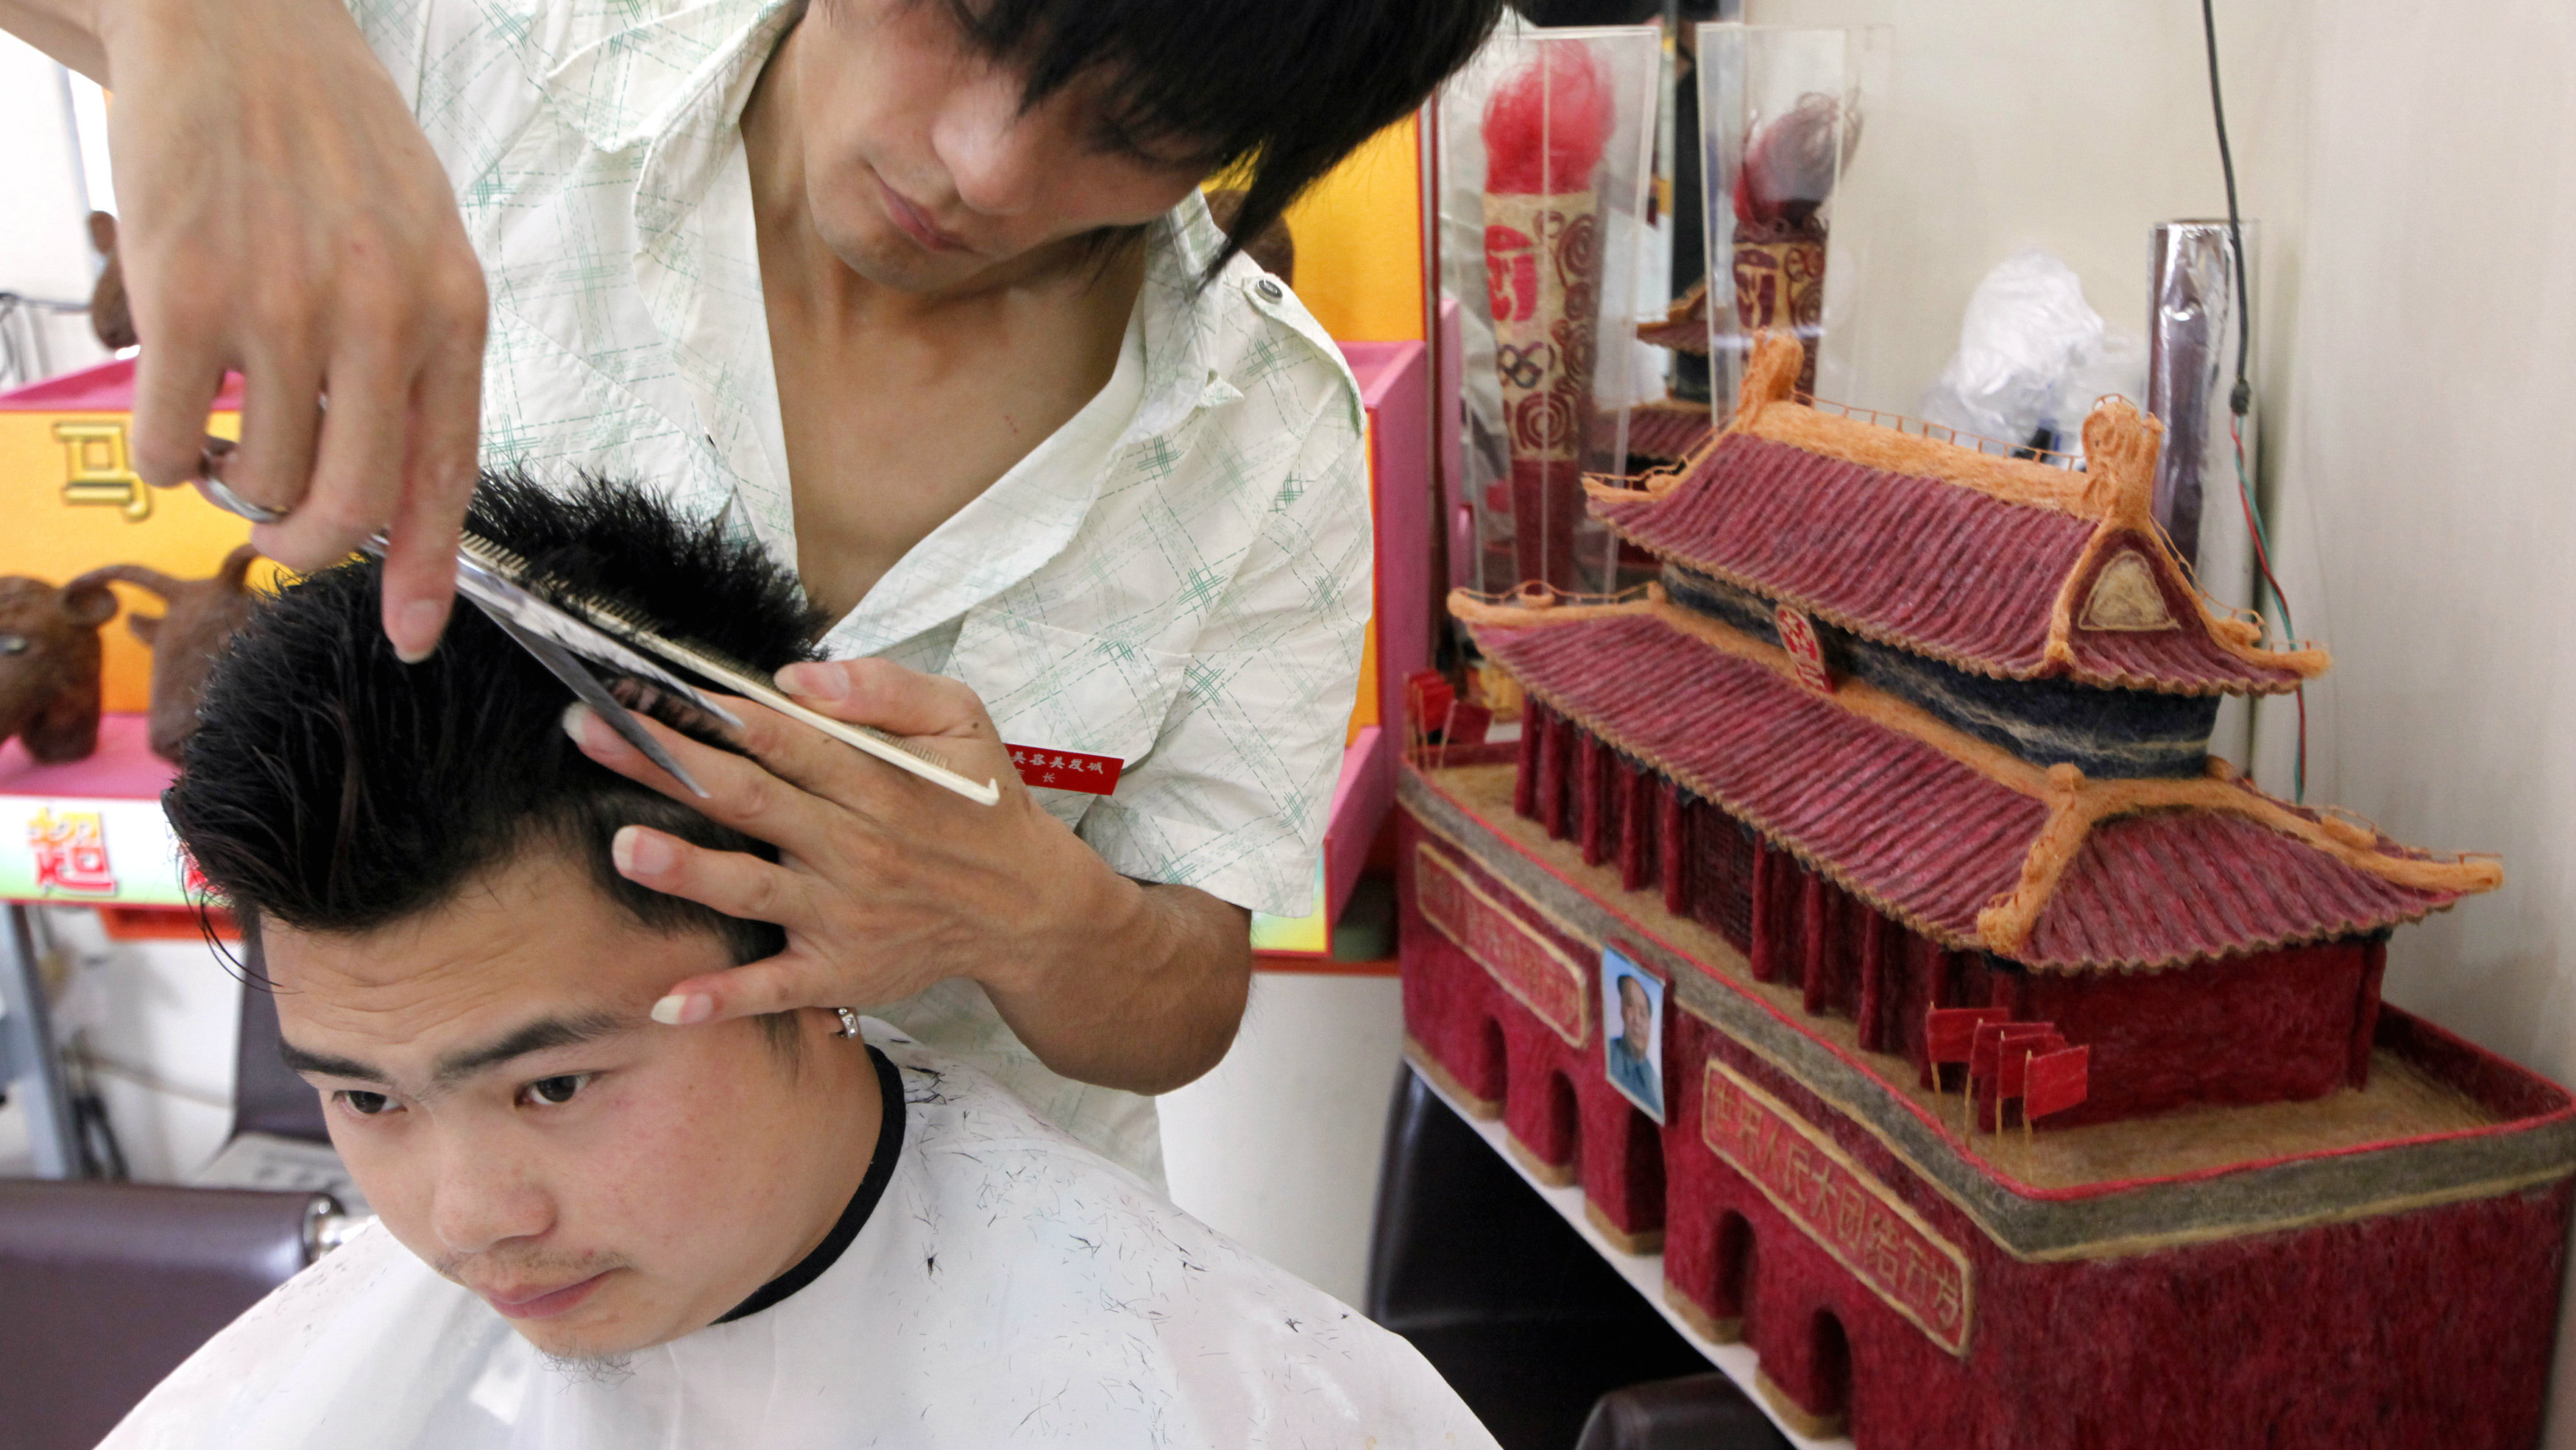 Chinese hairdresser Huang Xin (R) cuts the hair of a customer in front of replicas of the Tiananmen Gate and Olympic torches that he made from human hair at his barbershop in Beijing August 3, 2009. Huang used 11kg (24 lbs) of hair cut from his customers over a five month period to create the Tiananmen Gate replica. Huang started making reproductions from human hair in early 2008, including the Beijing Olympic stadium (also known as the Bird's Nest), the National Aquatics Centre (also known as the Water Cube), and the Olympic rings.